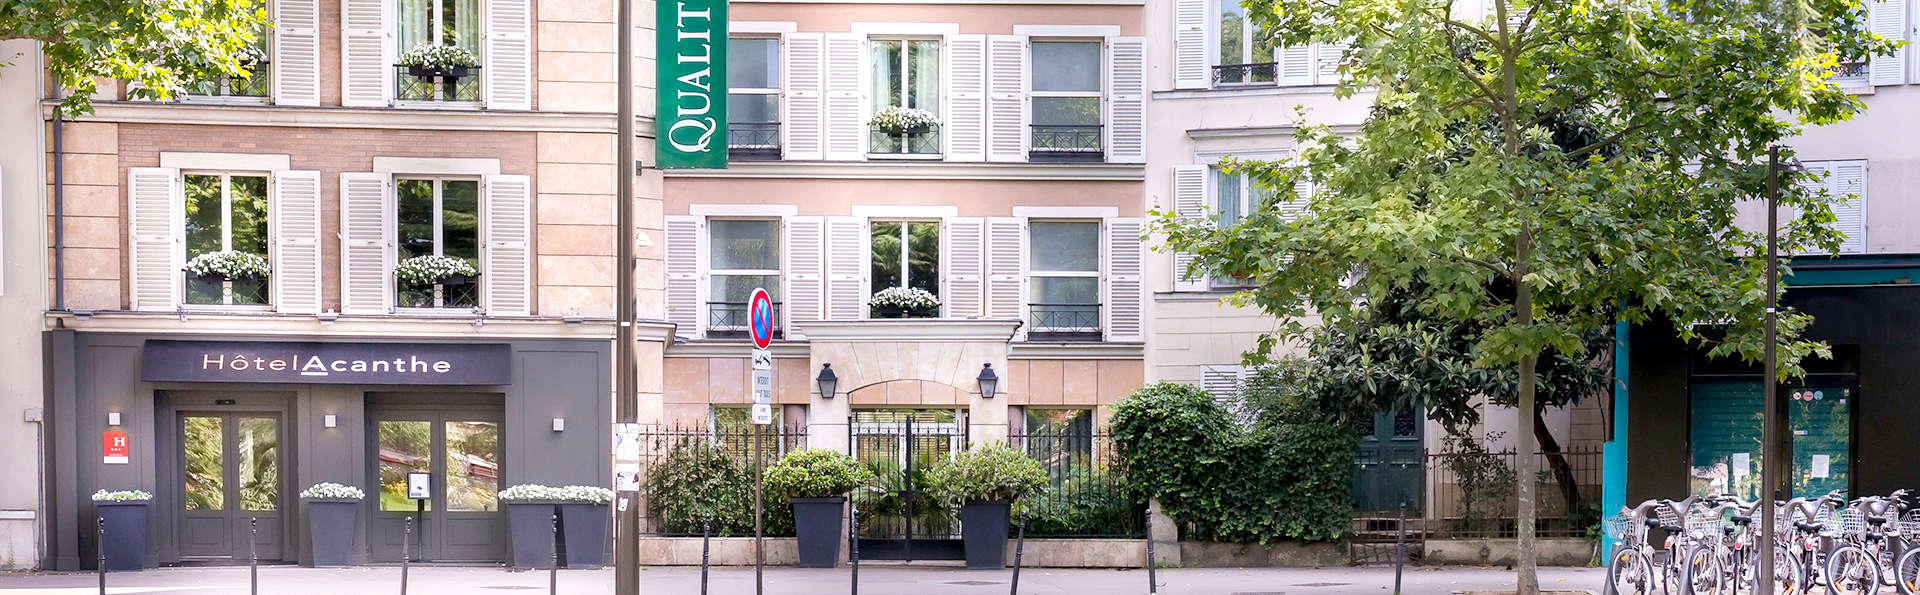 Quality Hotel Acanthe - Edit_Front3.jpg